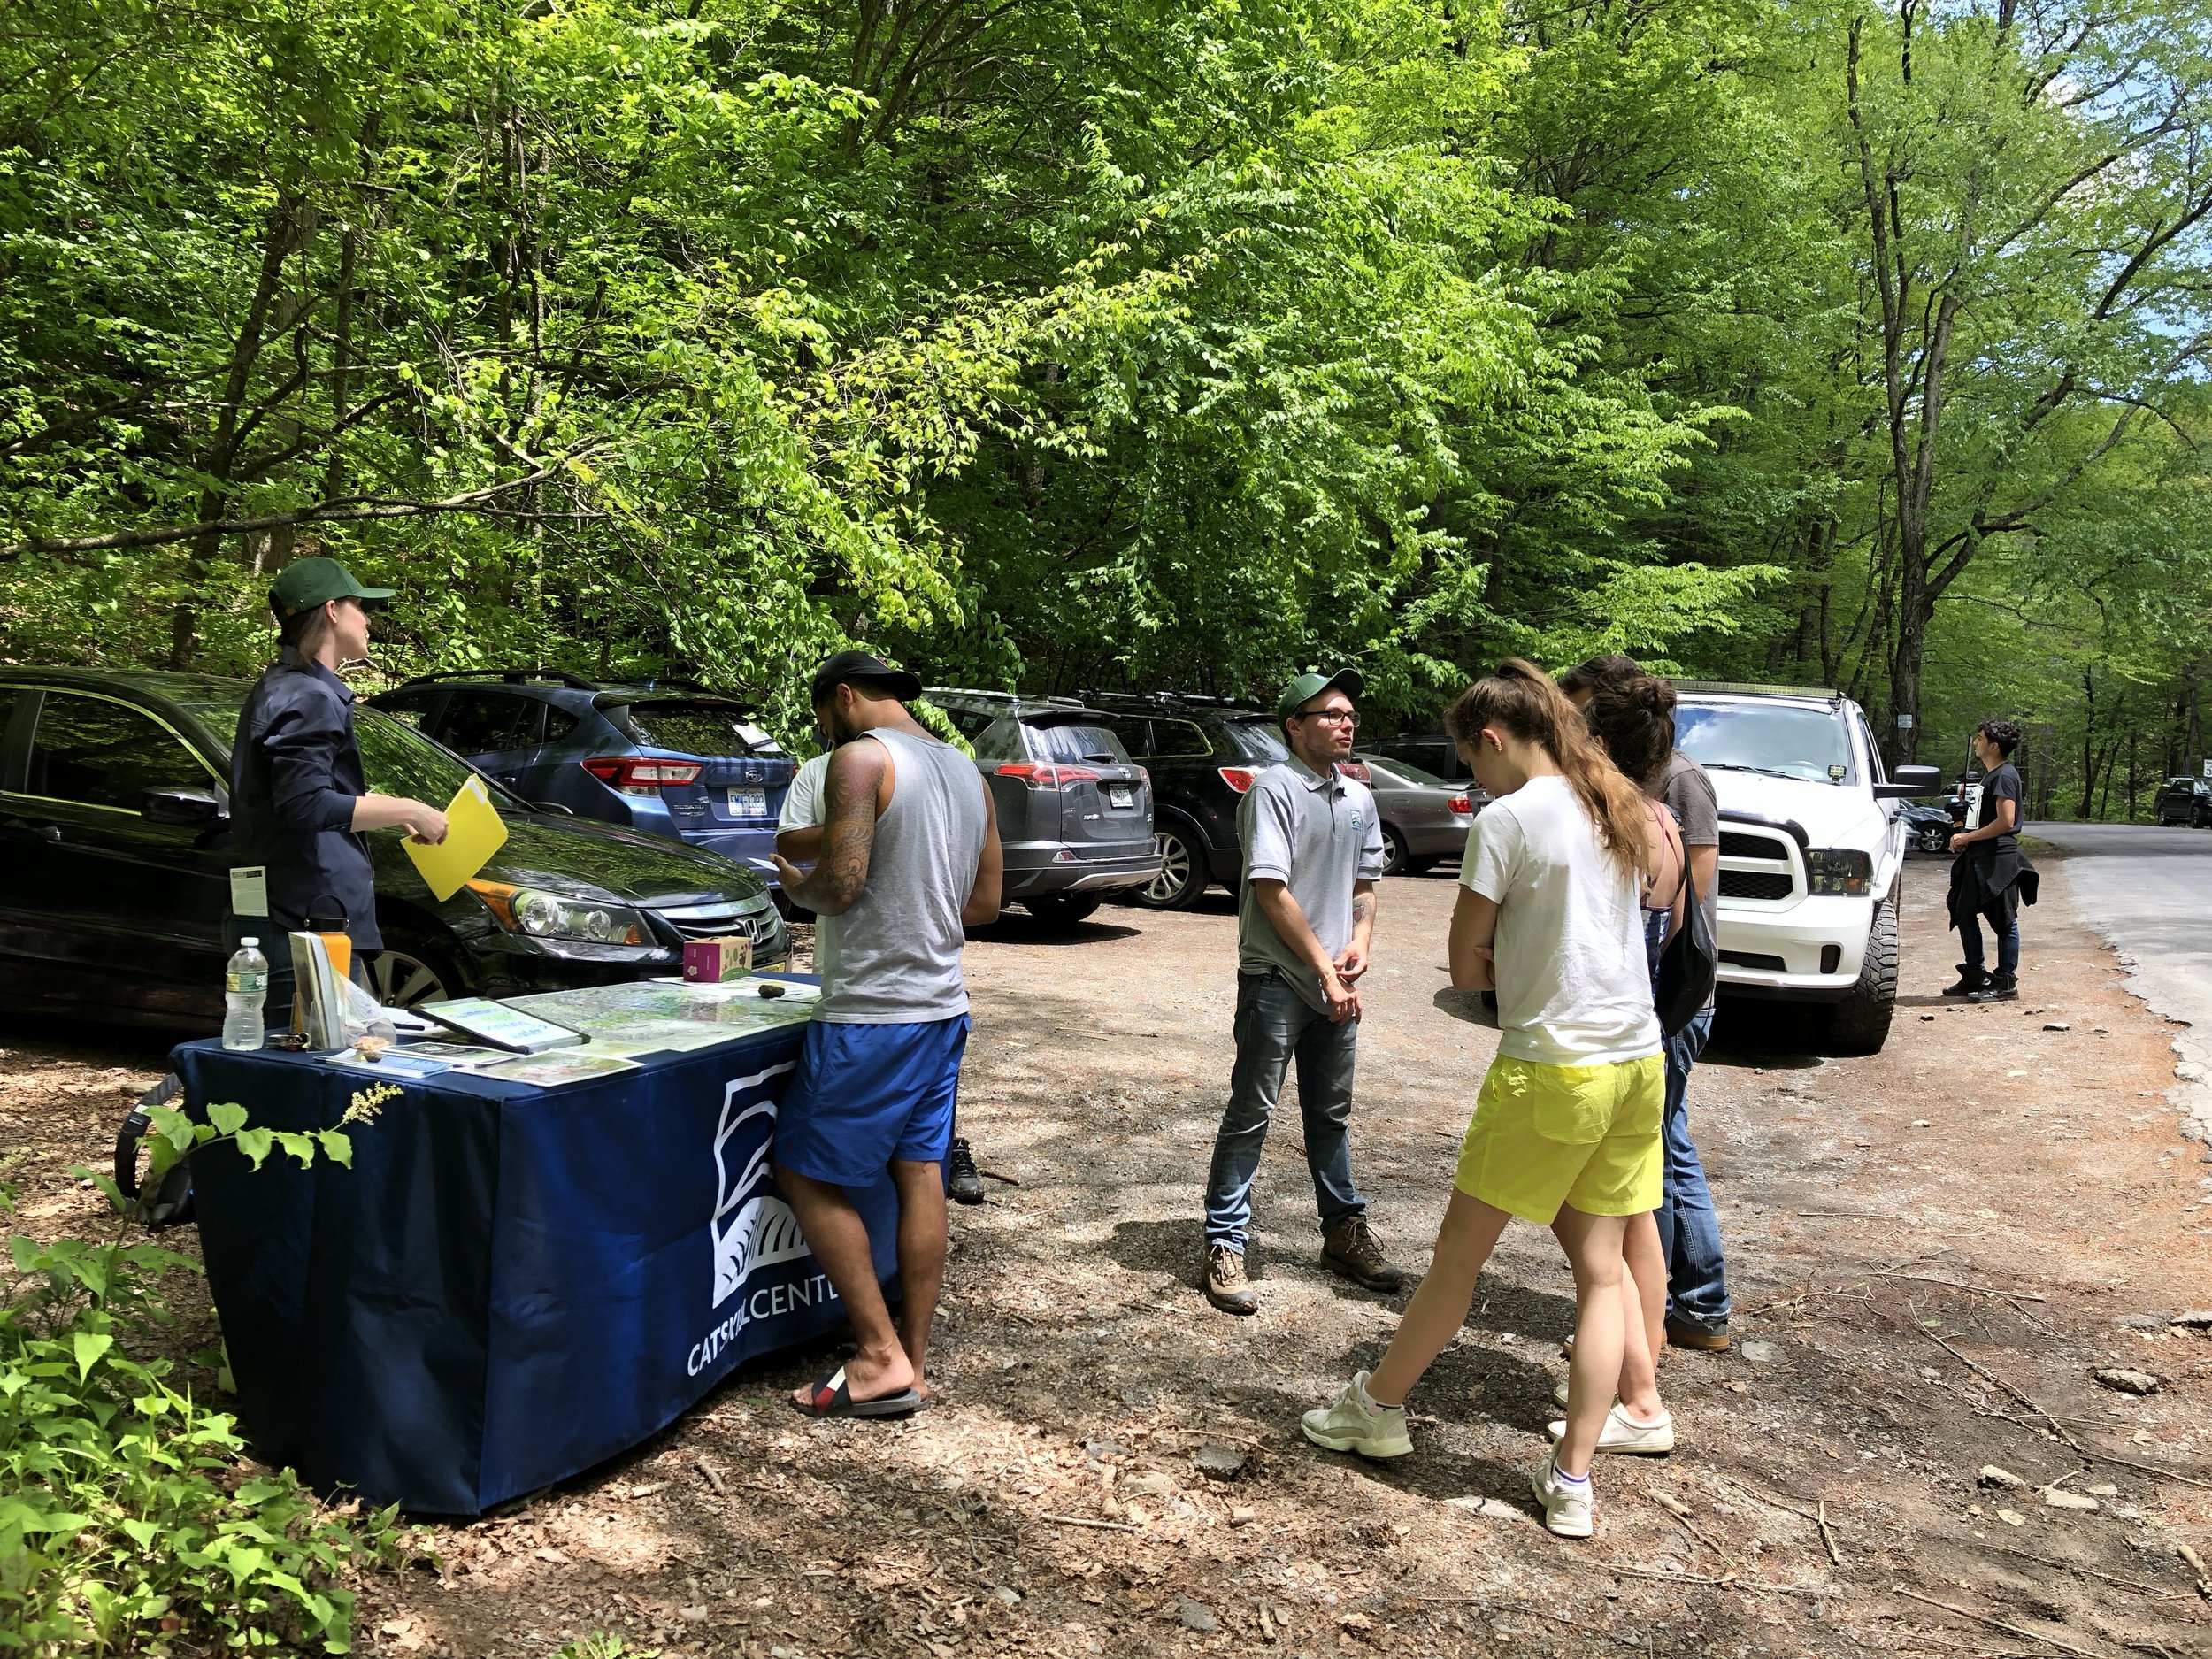 Stewards greeting visitors to the Peekamoose Blue Hole